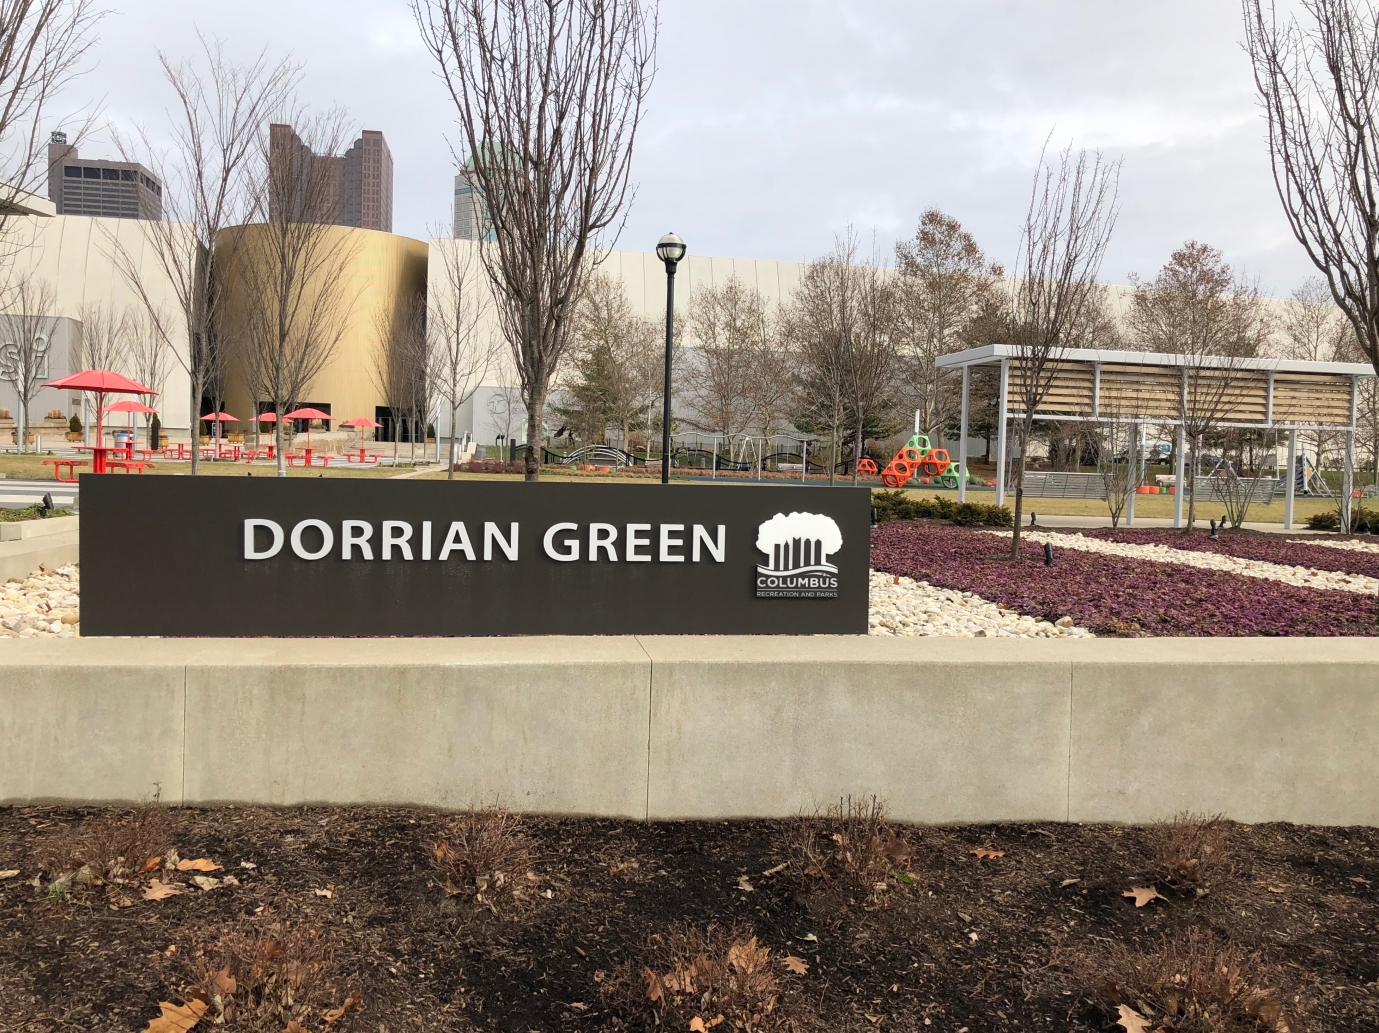 dorrian green park outside cosi